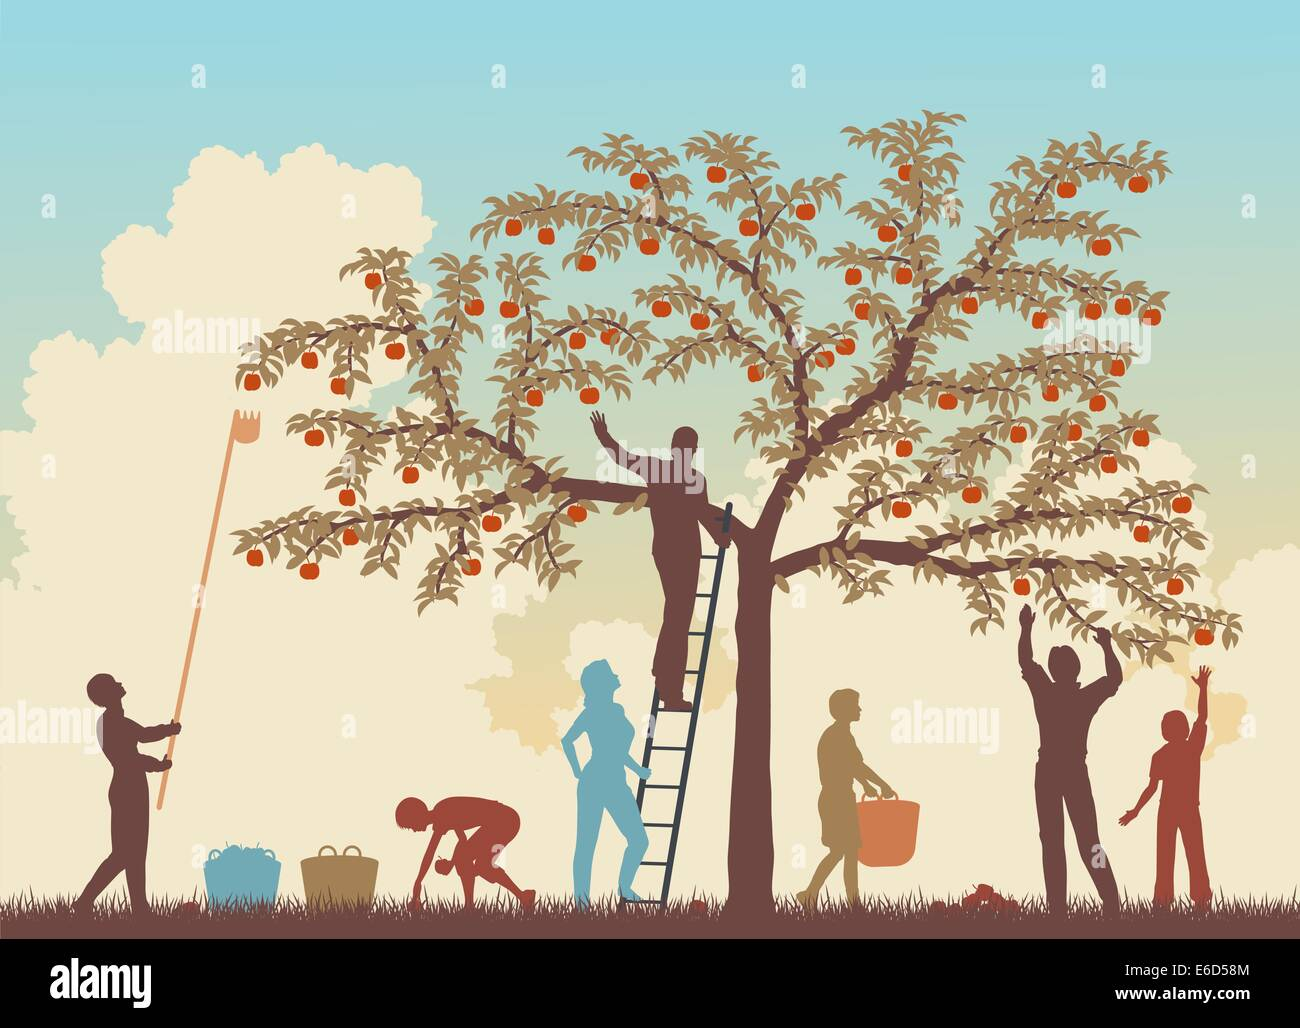 Editable vector colorful illustration of a family harvesting apples from a tree - Stock Vector